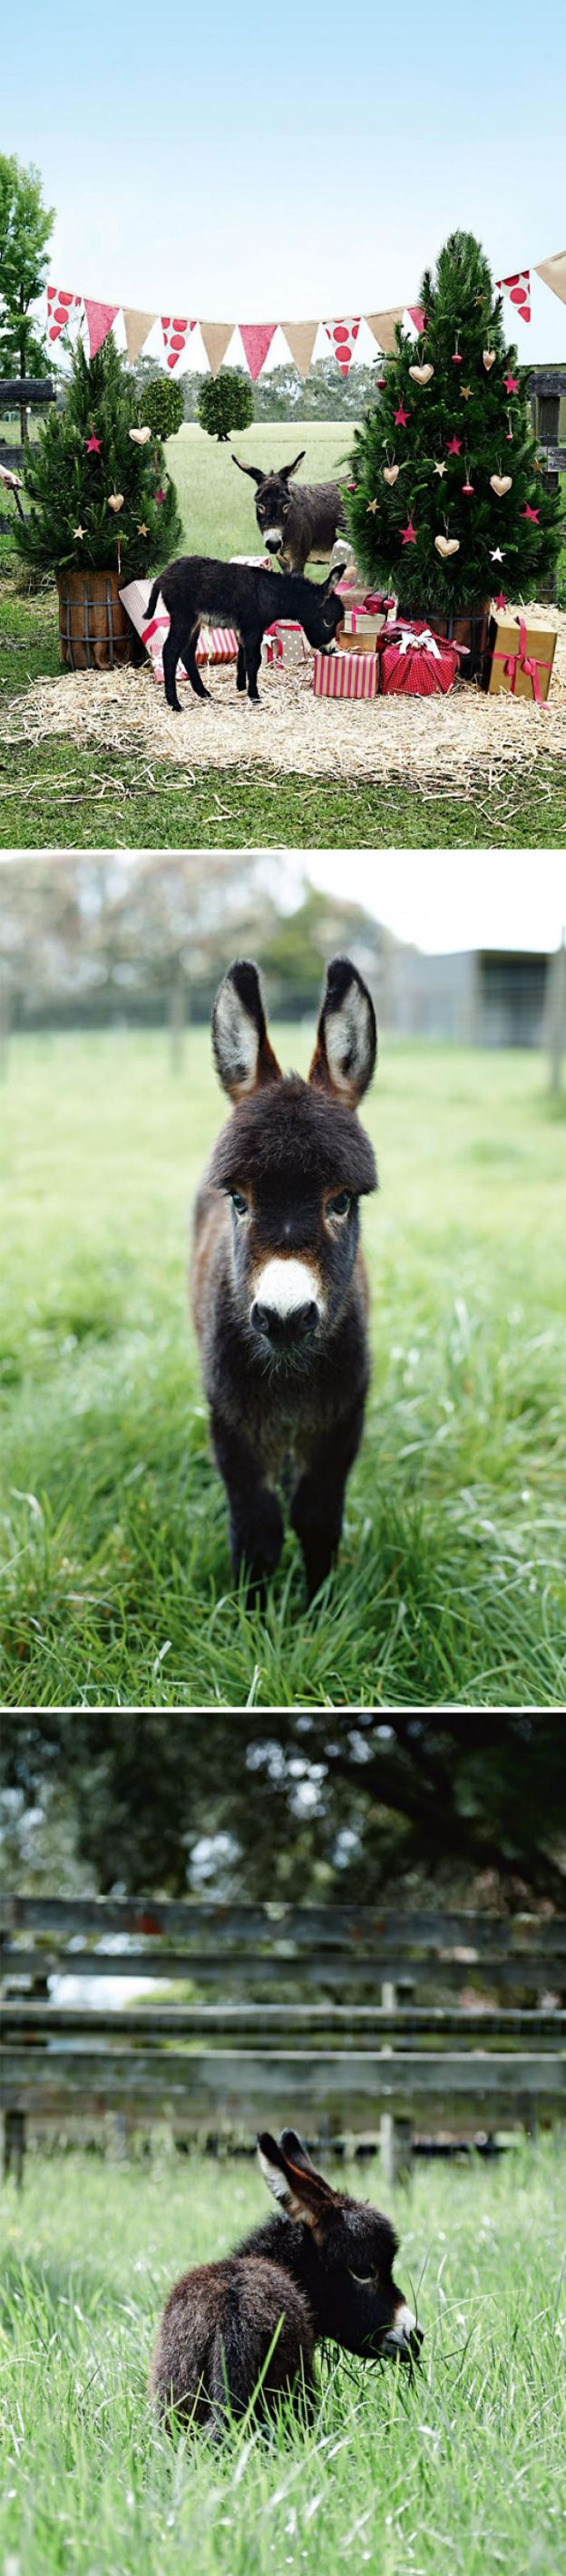 cute-miniature-baby-donkeys-46-5aabe1c979de8__700 These 25+ Cute Baby Donkeys Are Everything You Need To See Today Design Random